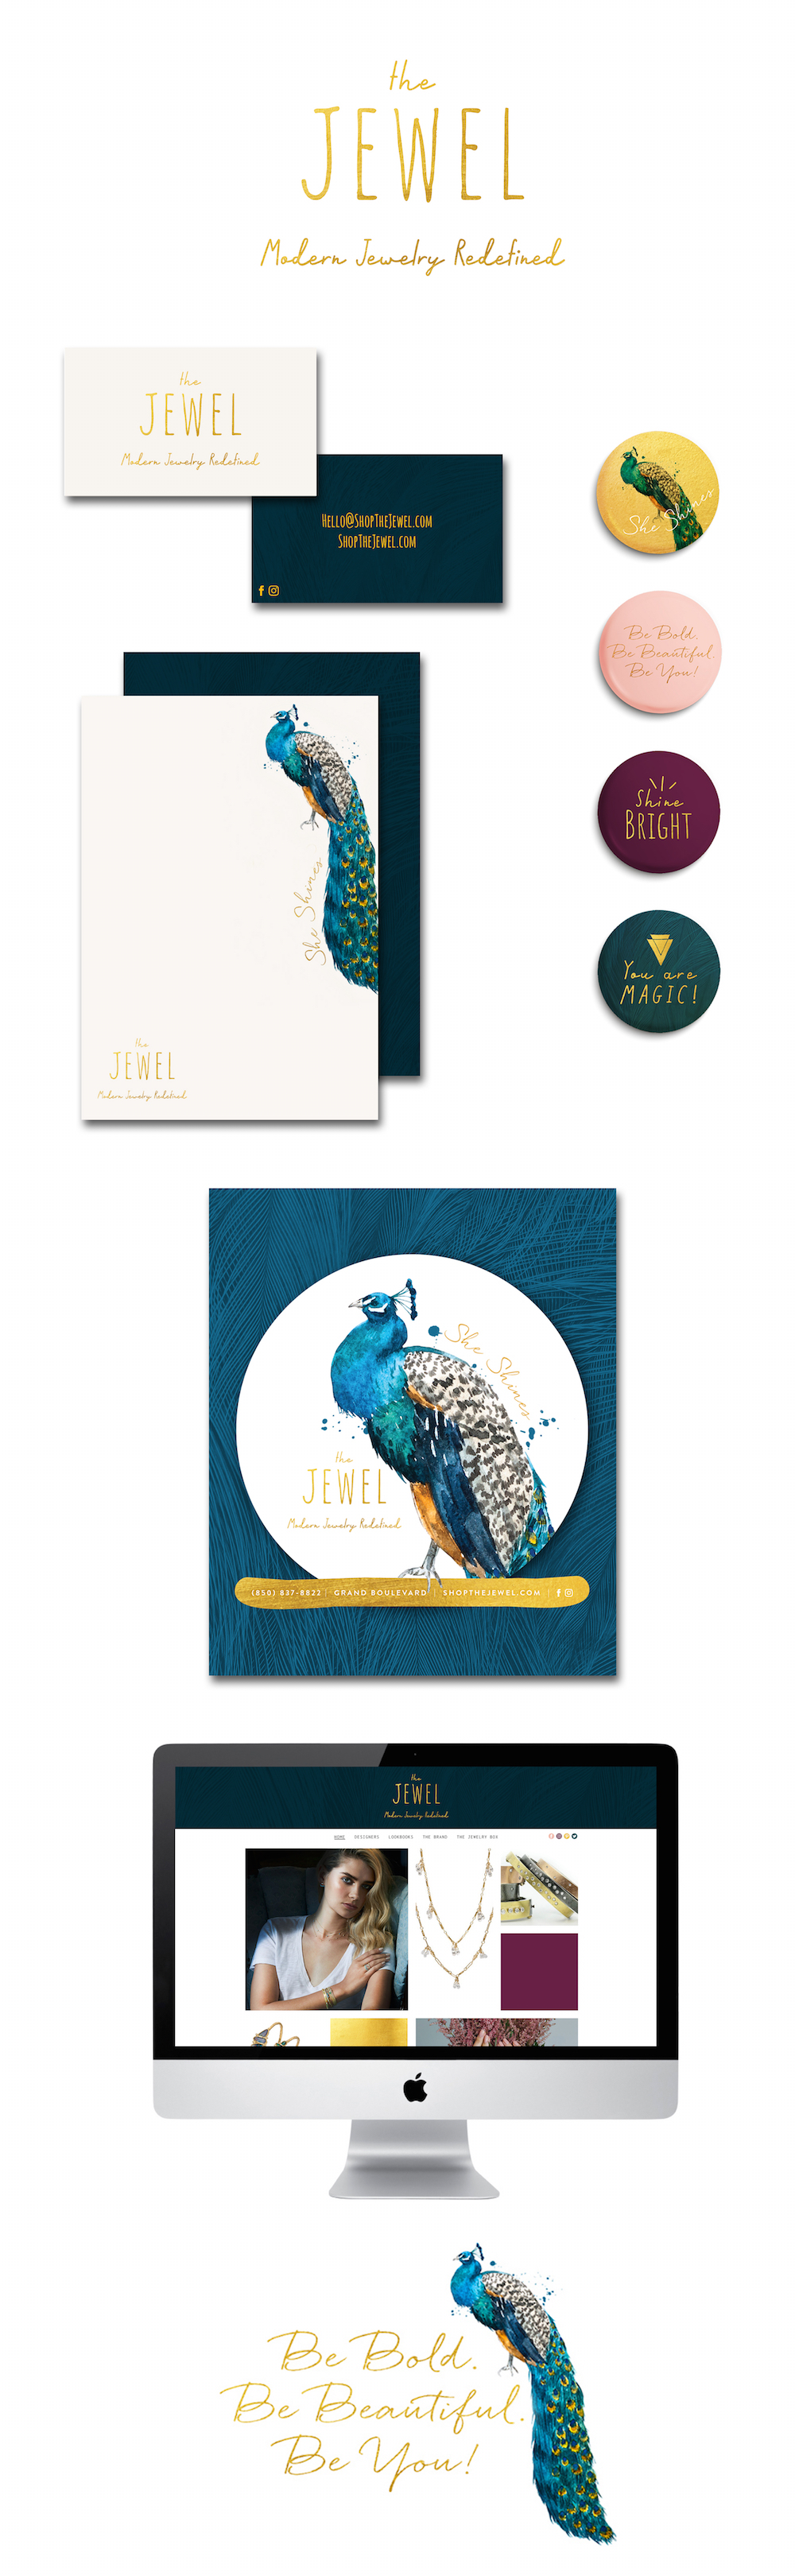 The Jewel Grand Boulevard Miramar Beach Florida Branding Package by The Idea Boutique